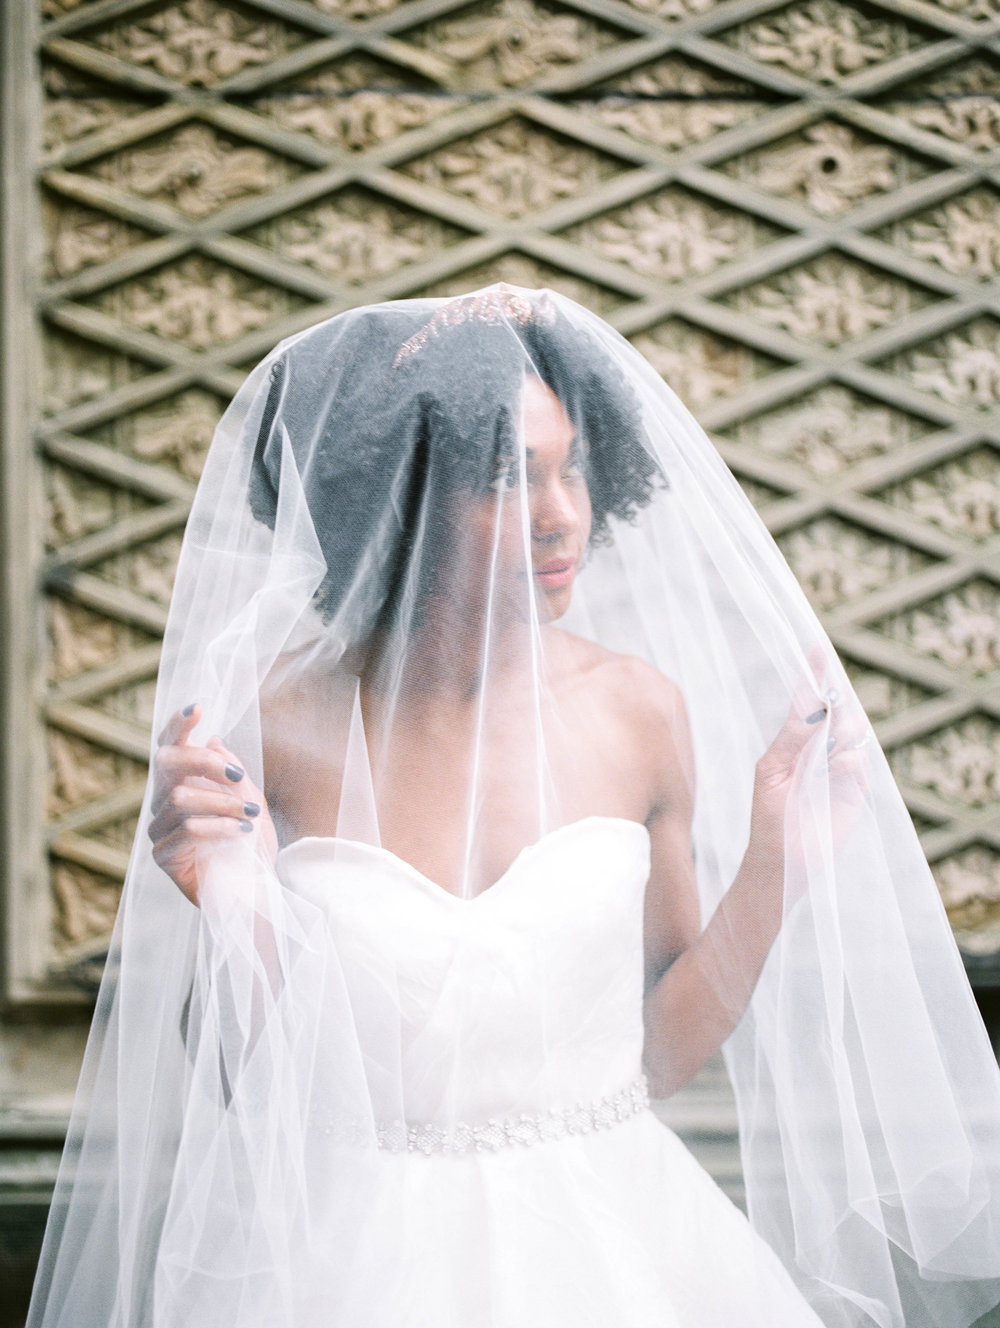 NYC Wedding Photographer - www.jleephotos.com